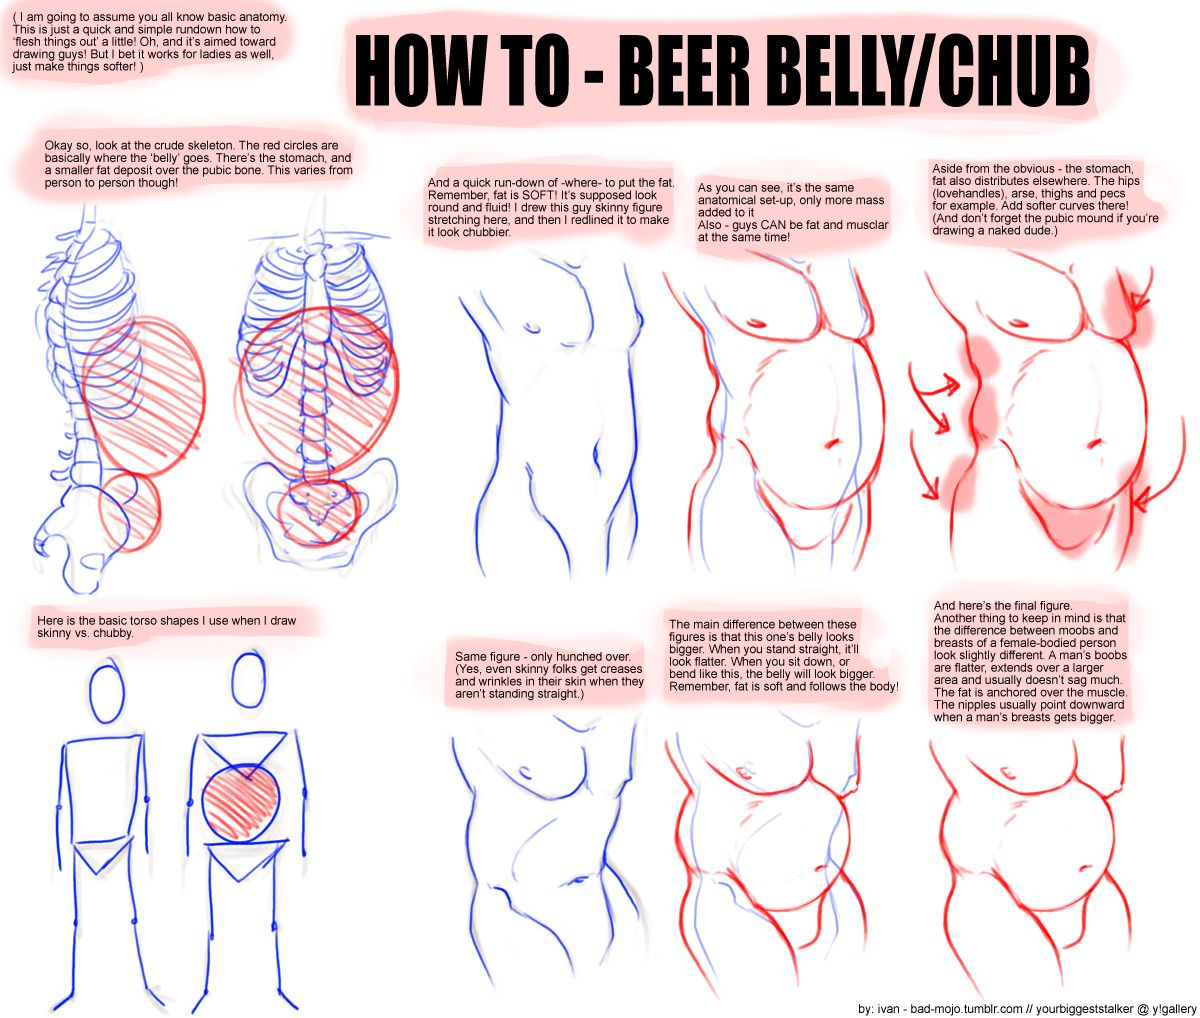 Enchanting Anatomy Of A Beer Belly Adornment Anatomy Ideas